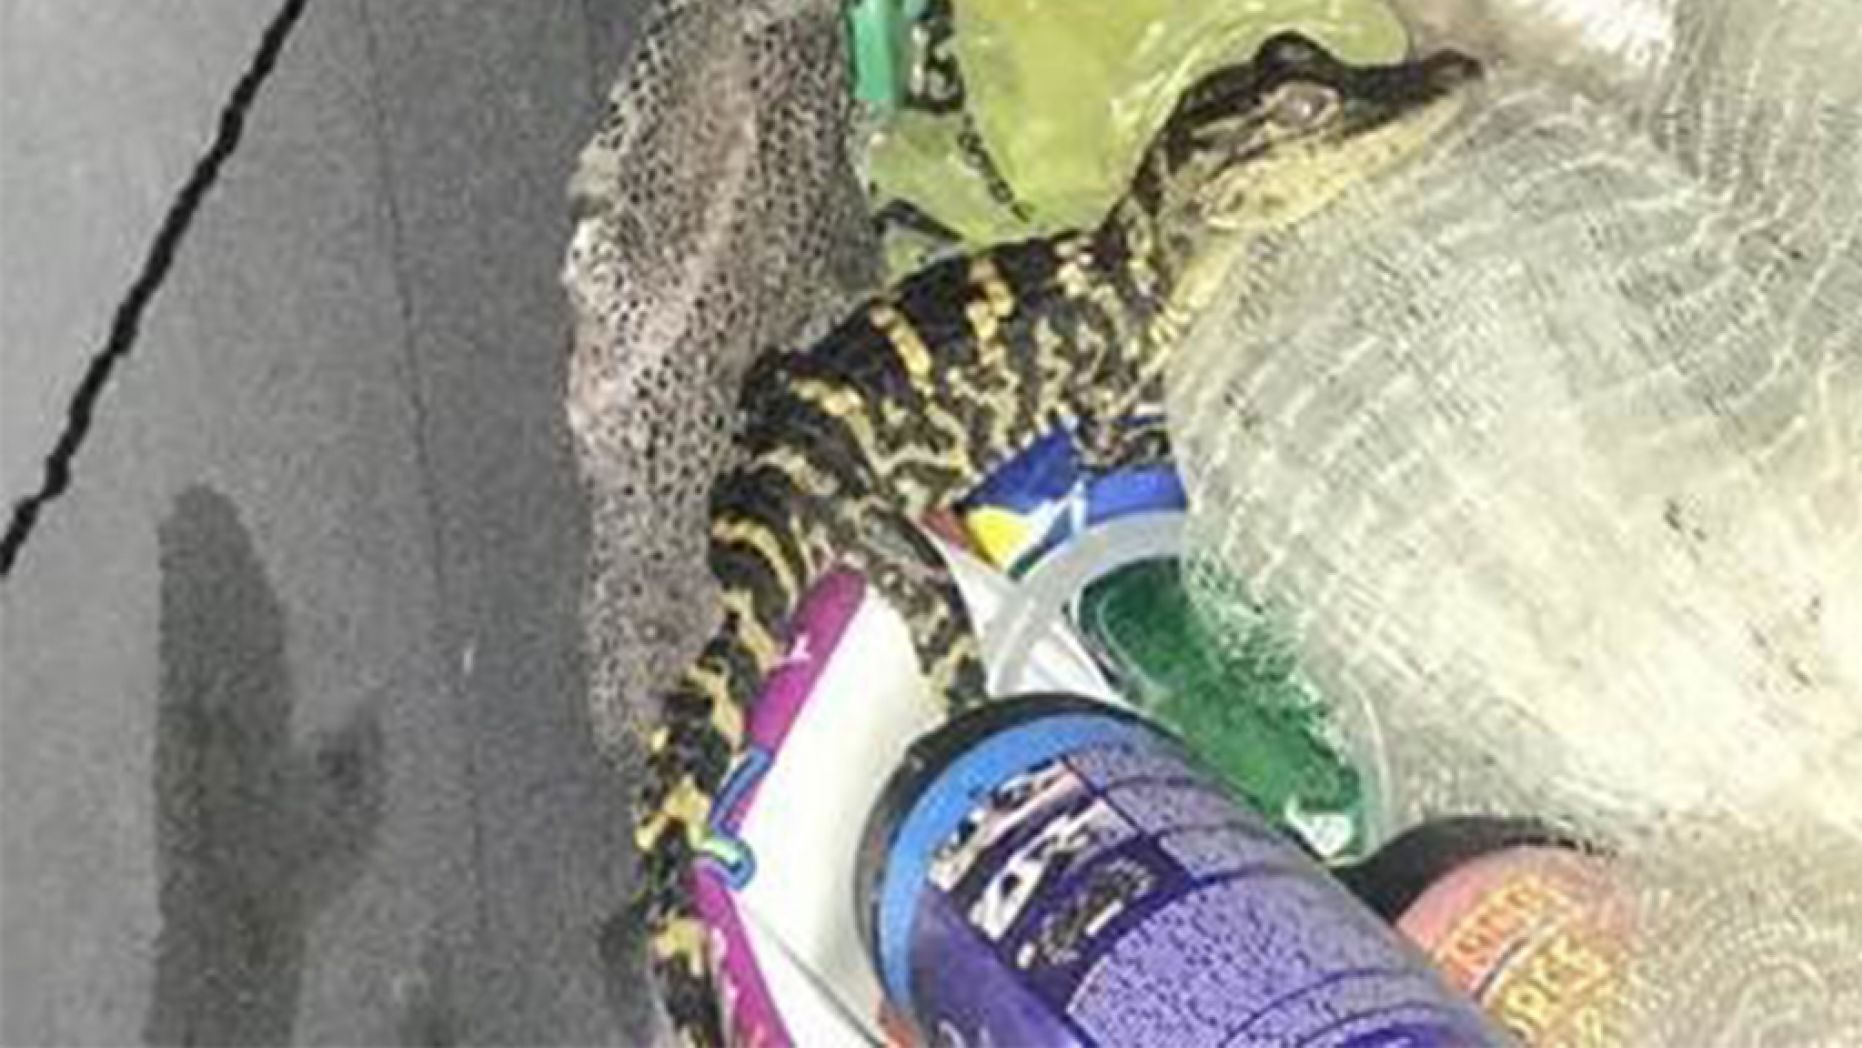 Florida woman pulls alligator from her pants during traffic stop